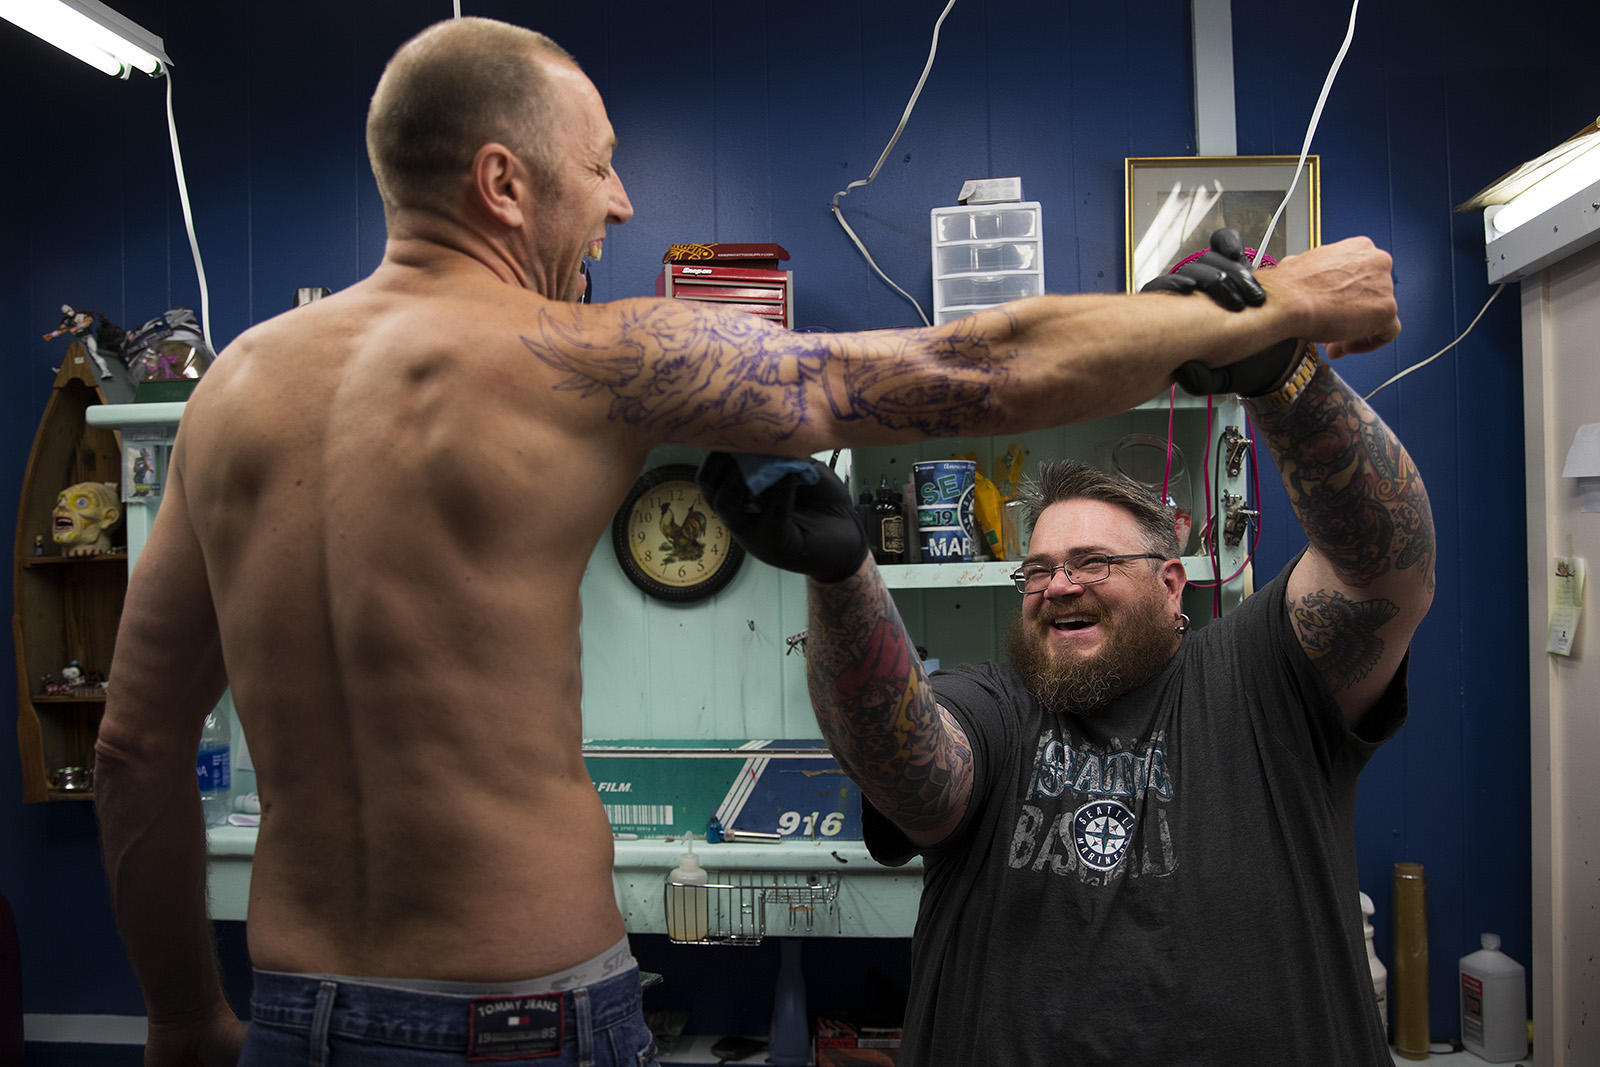 bremerton men Tattoo parlors tend to cluster near the navy base in bremerton and indeed, a good chunk of the work done there is nautical in nature but it's not all.